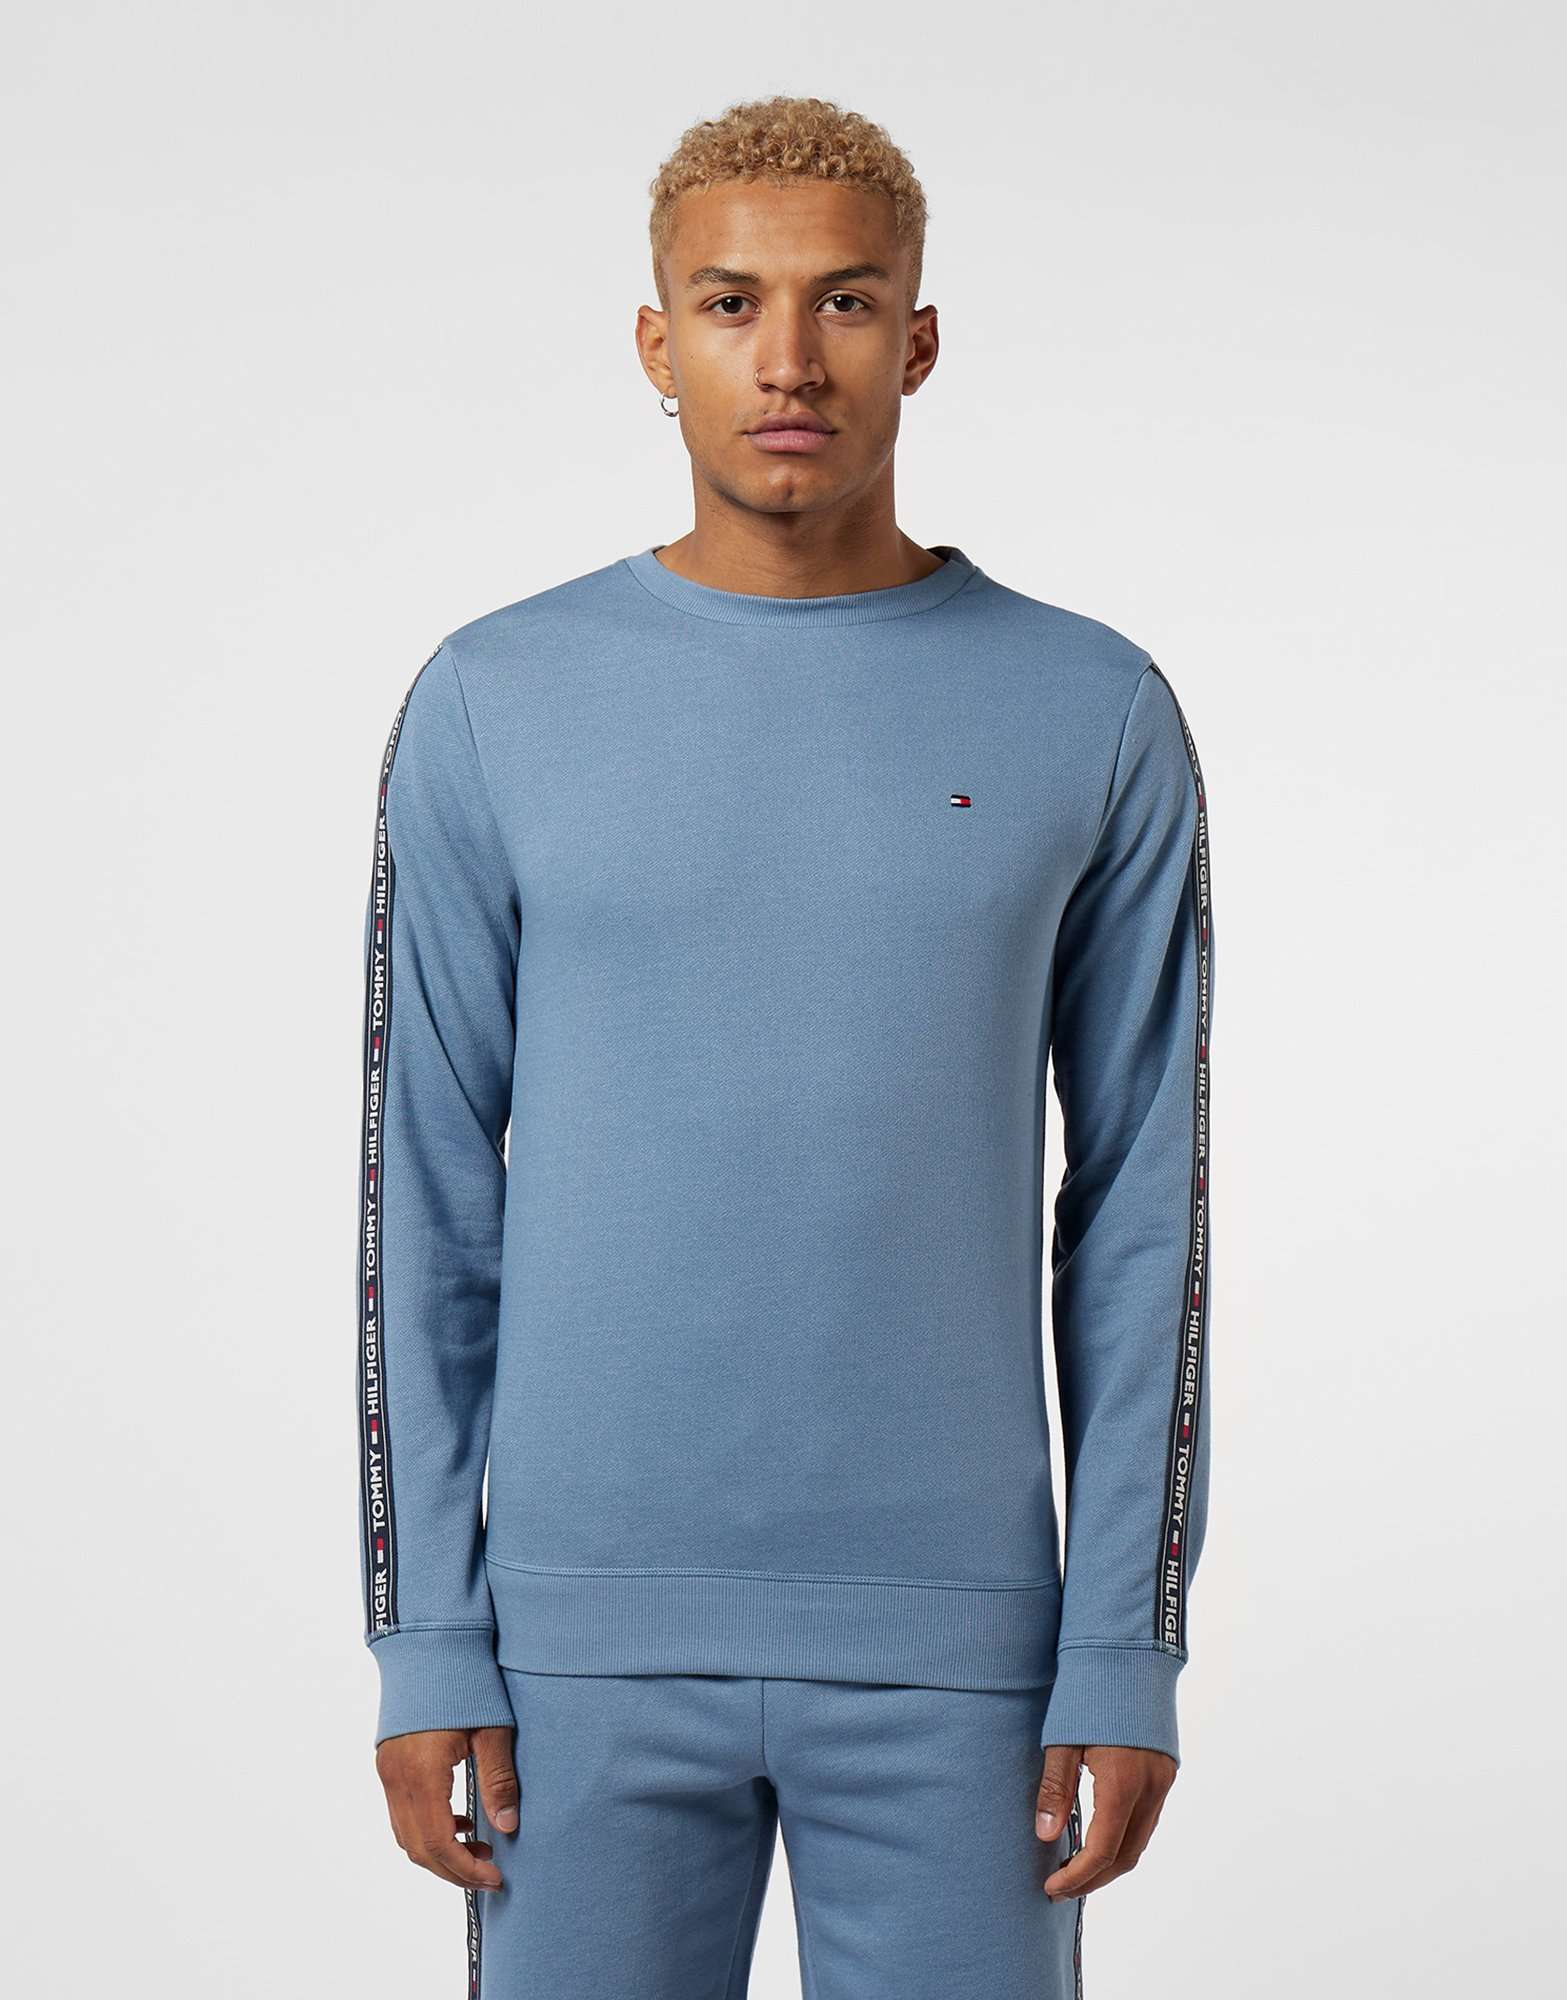 c678f239c Tommy Hilfiger Tape Crew Sweatshirt | scotts Menswear